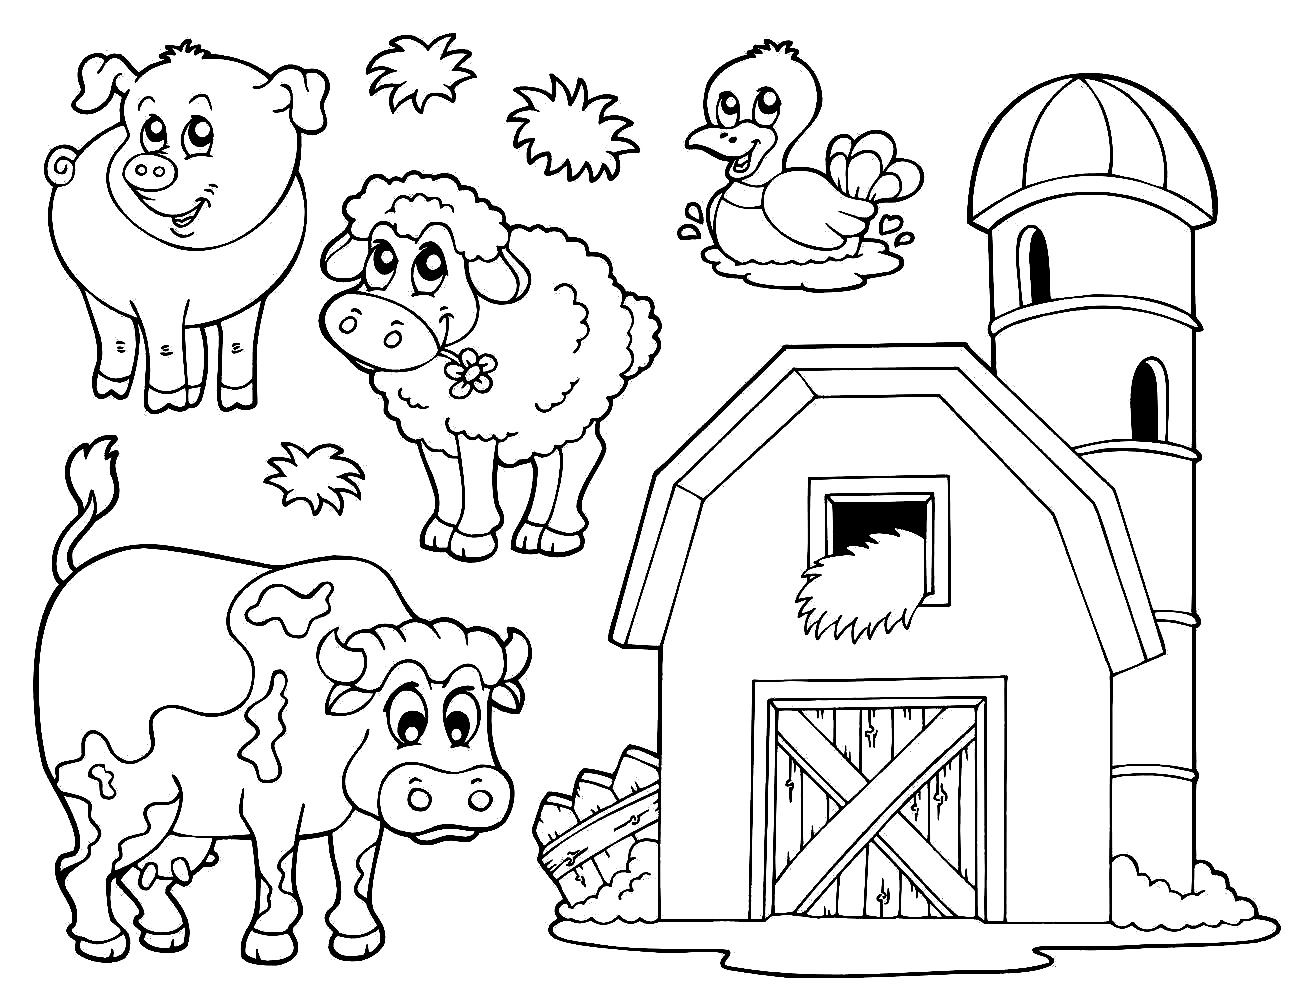 Farm Animal Coloring Pages Printable Coloring Page Photos Farm Animal Coloring Pages Farm Coloring Pages Animal Coloring Pages